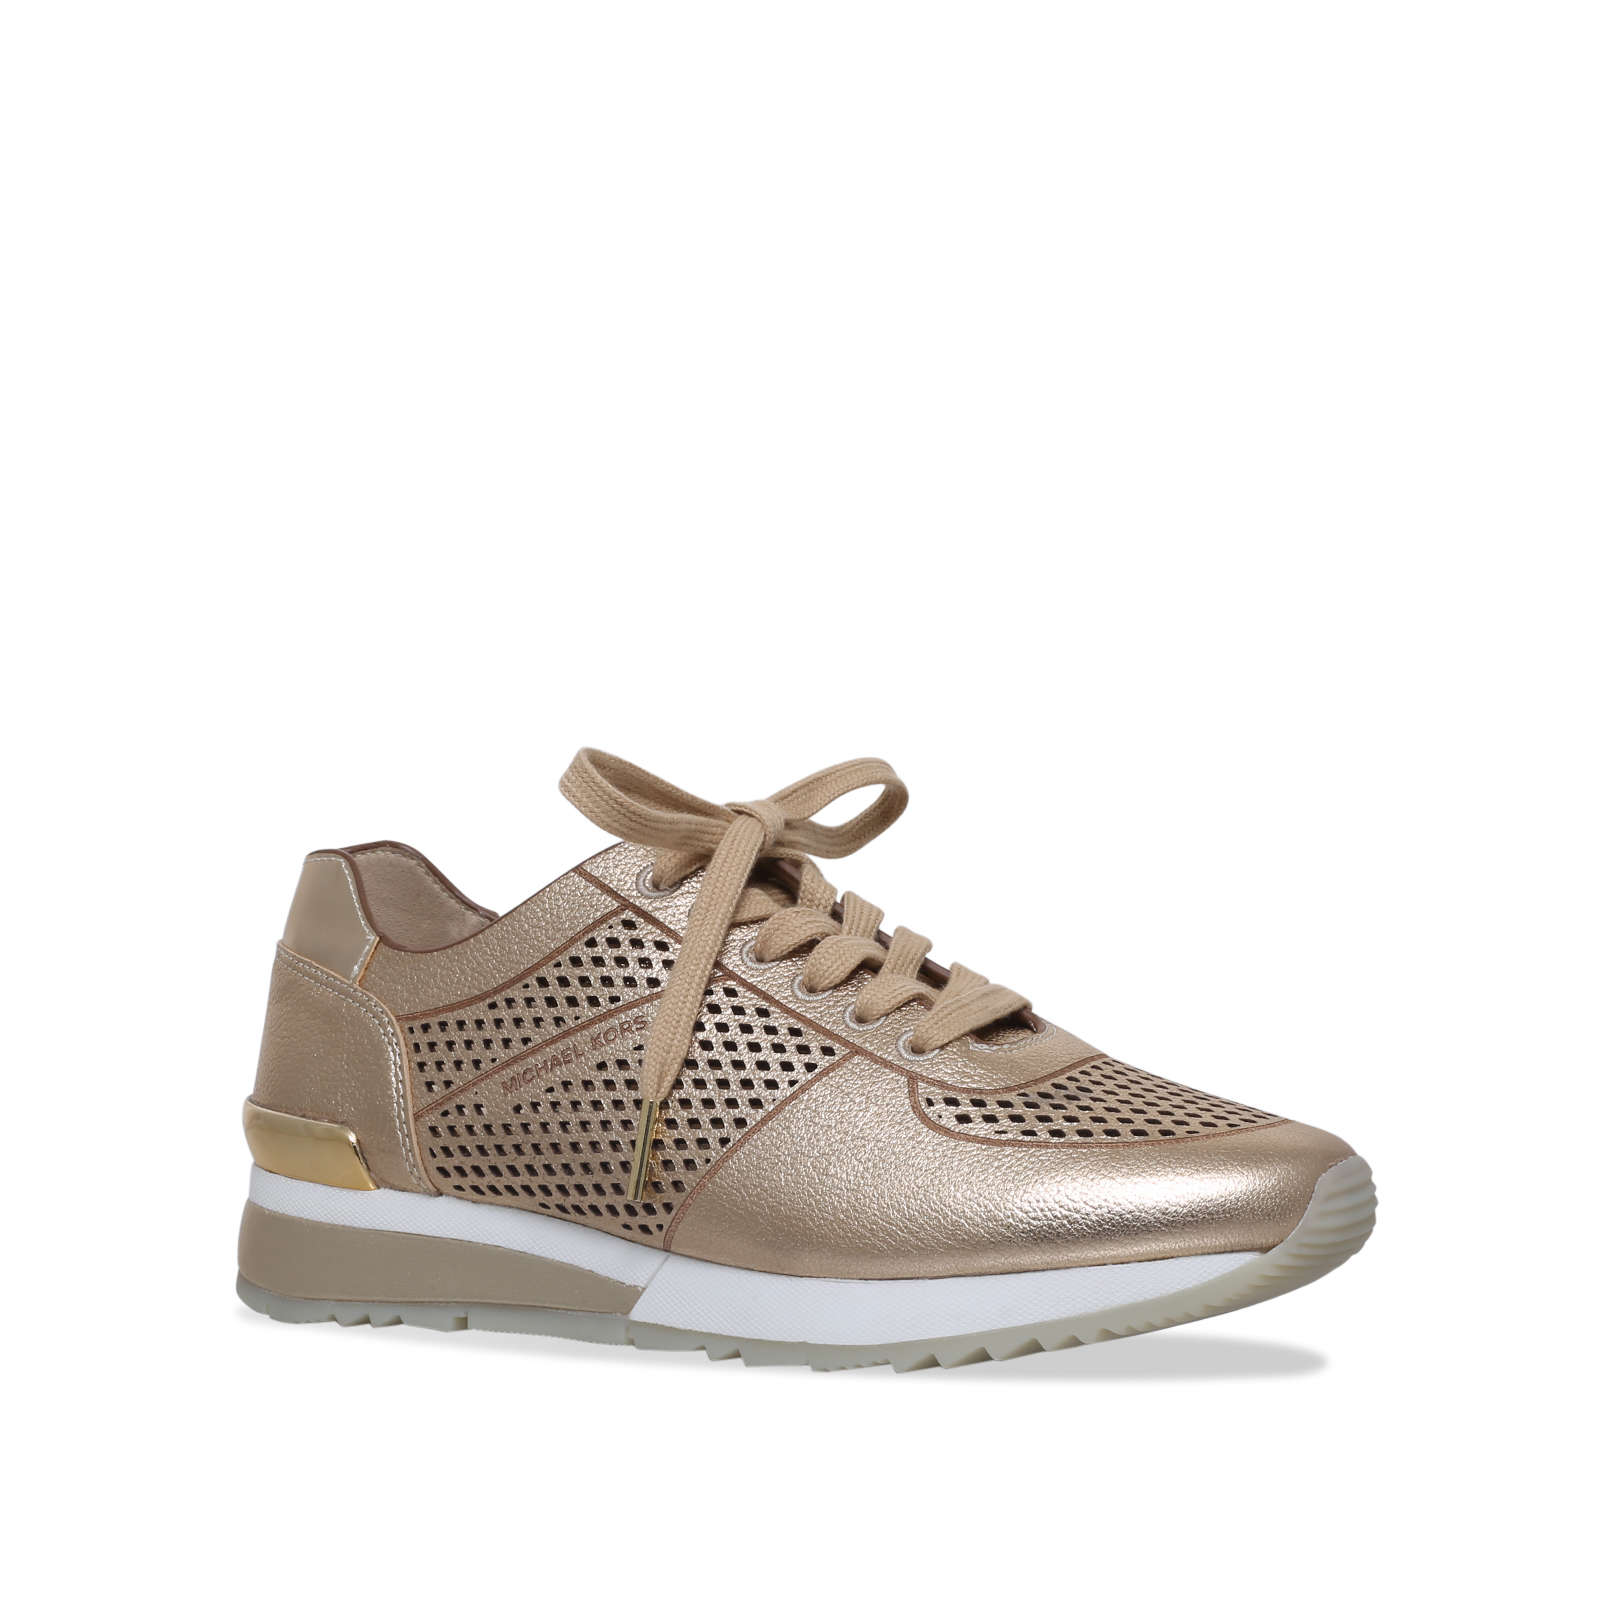 Womens Michael Kors Shoes Trainers Shoeaholics Flash  Olivia Sneakers Tilda Trainer From